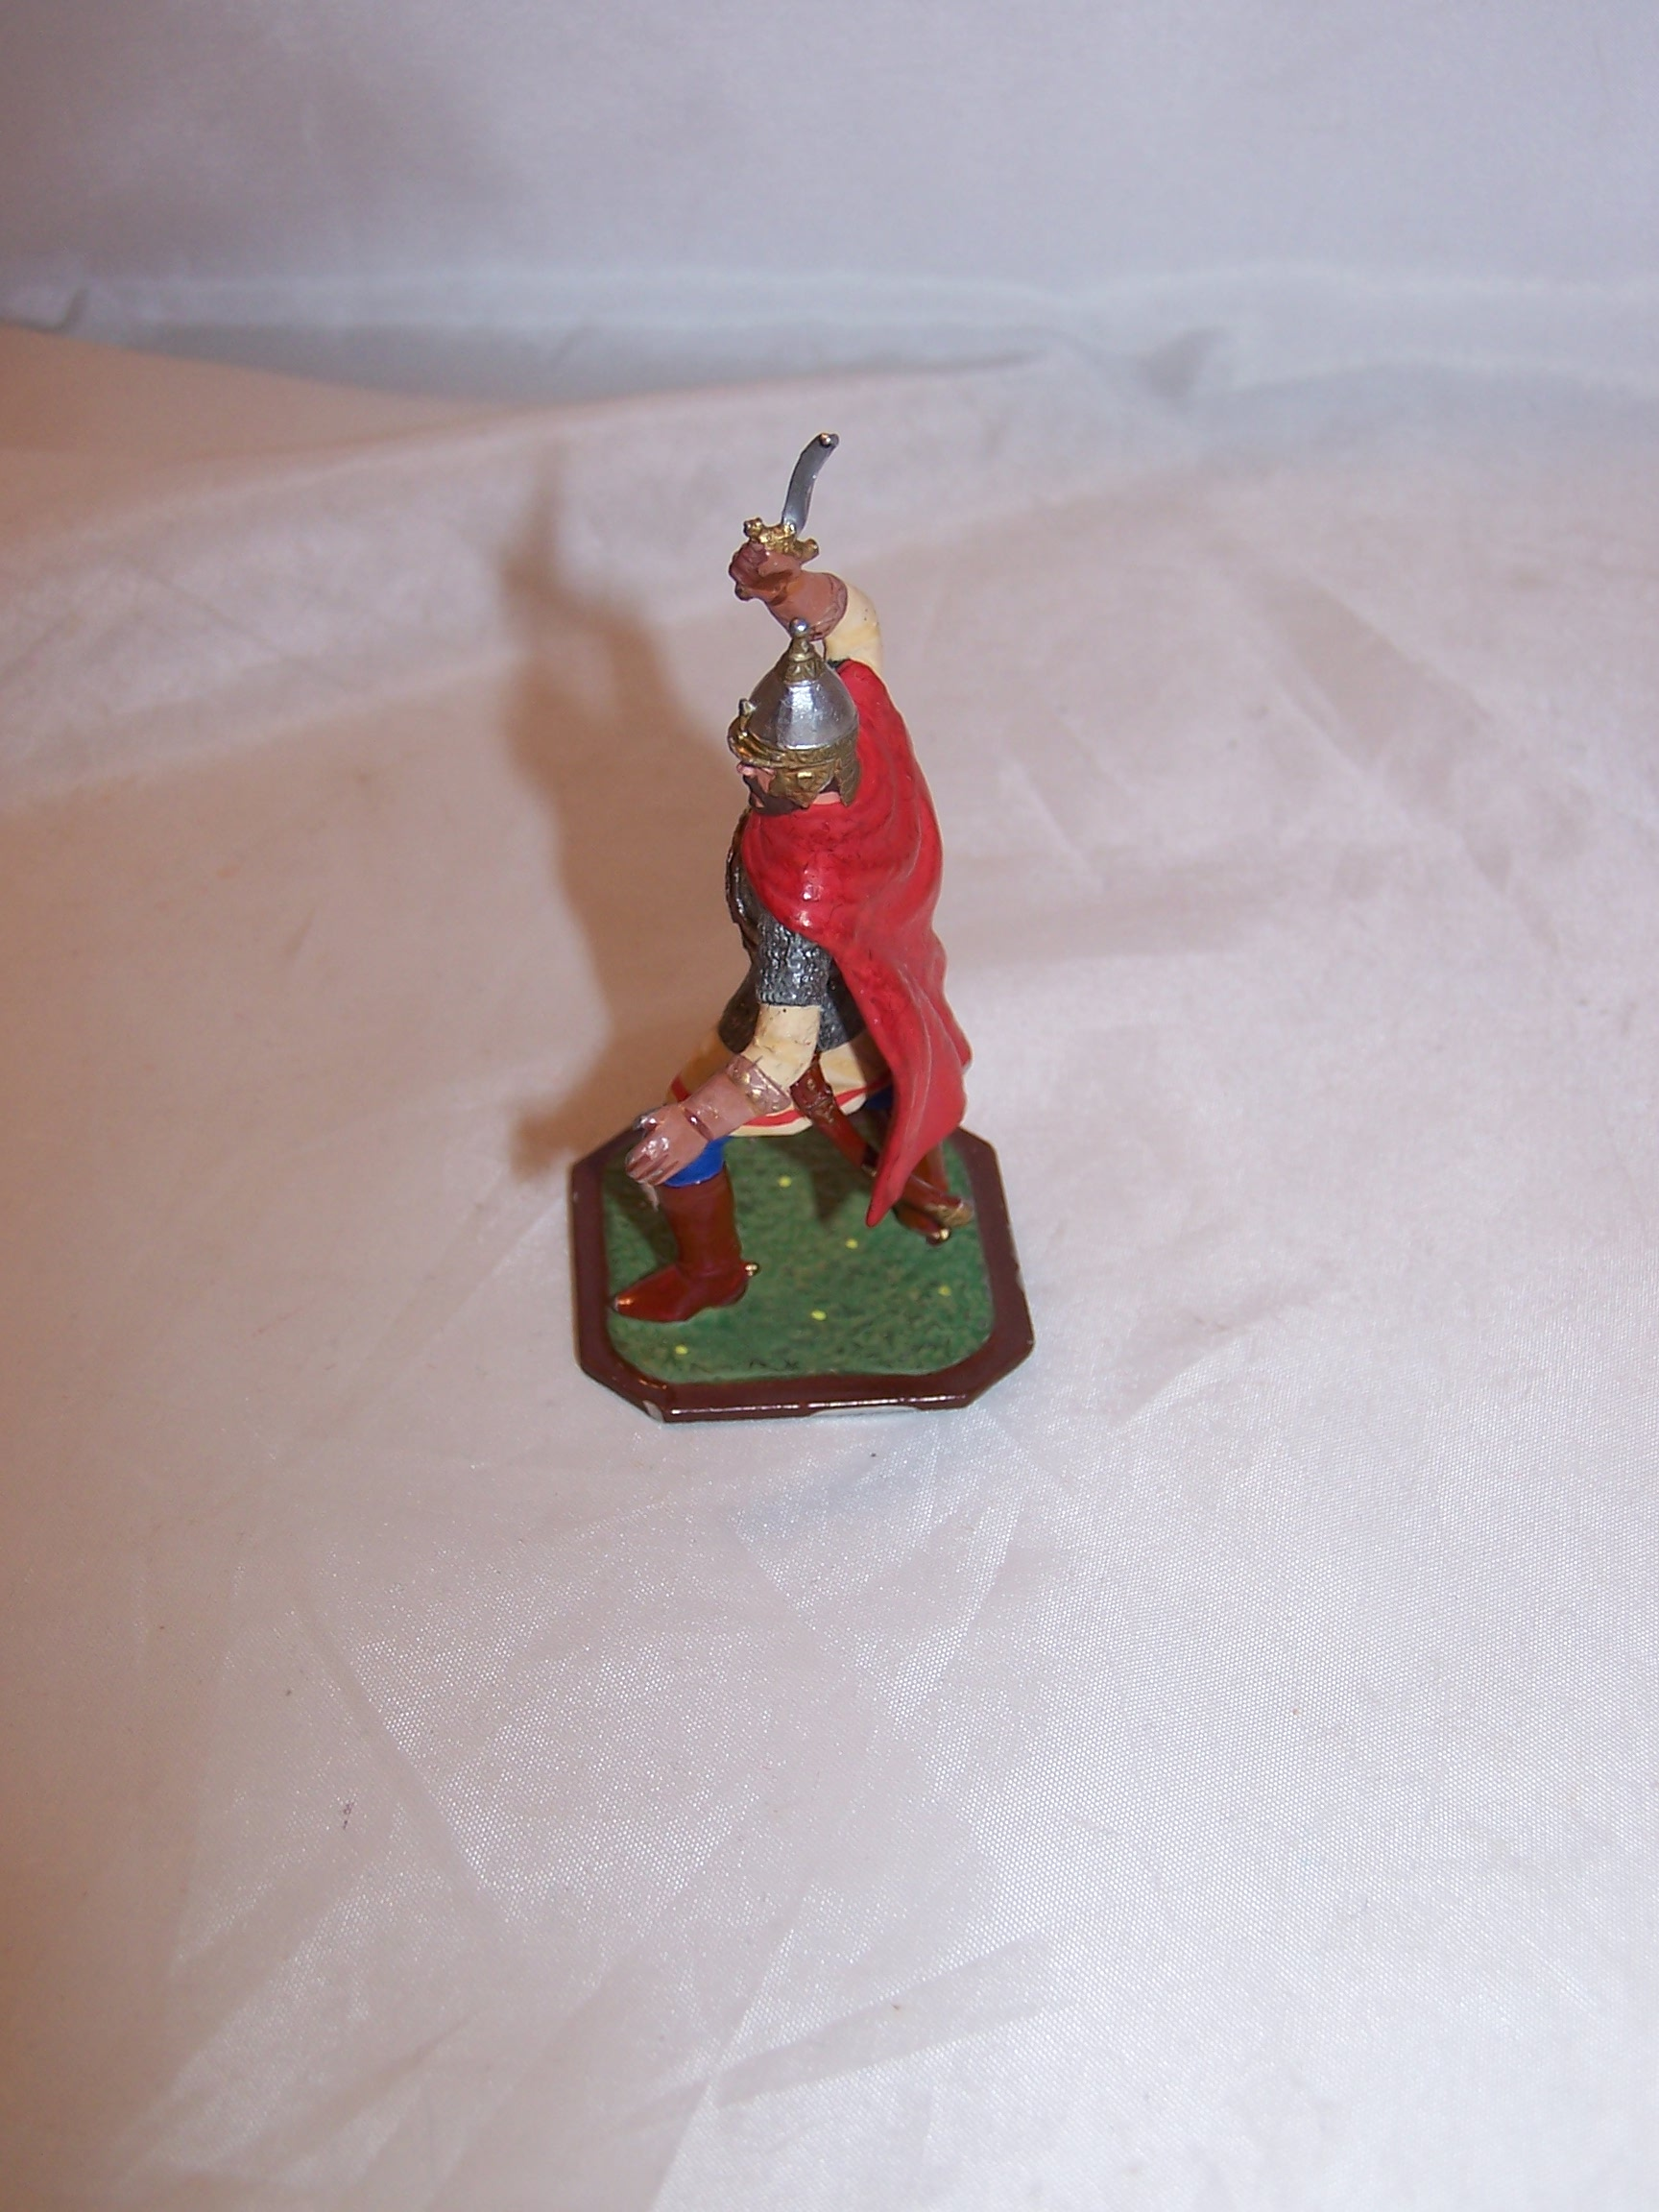 Image 4 of Roman Soldier, Painted Metal, Signed, Highly Detailed